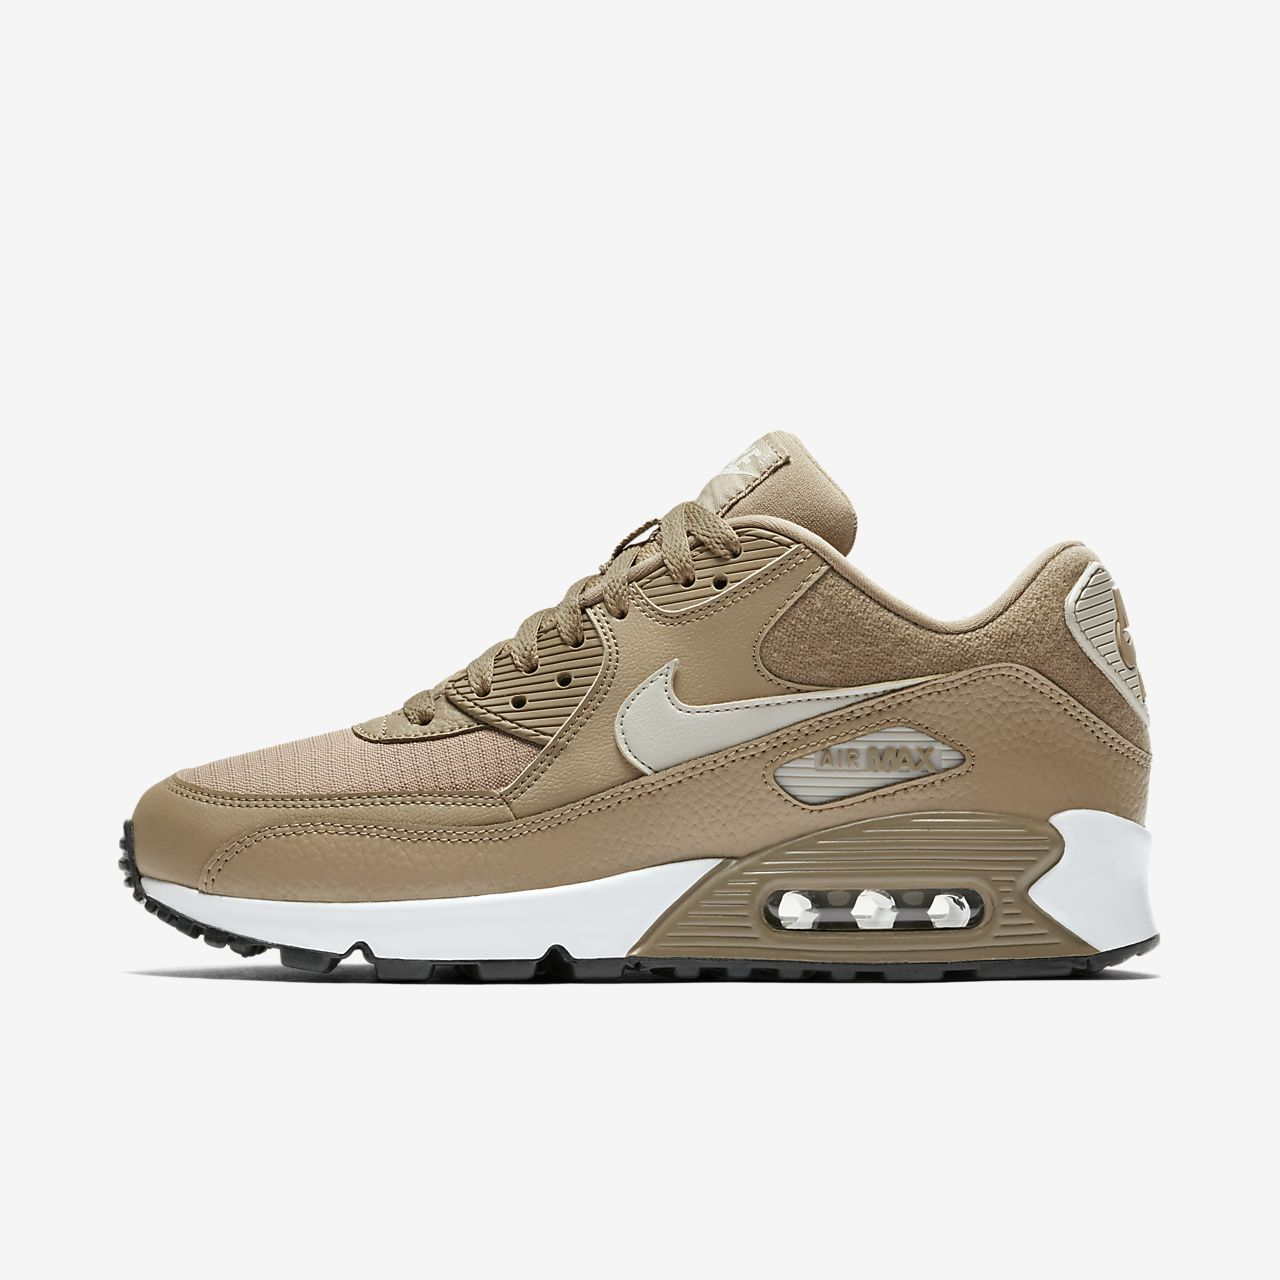 best value 4e8be 22e79 ... real nike air max 90 sko til kvinder ddbf4 dd947